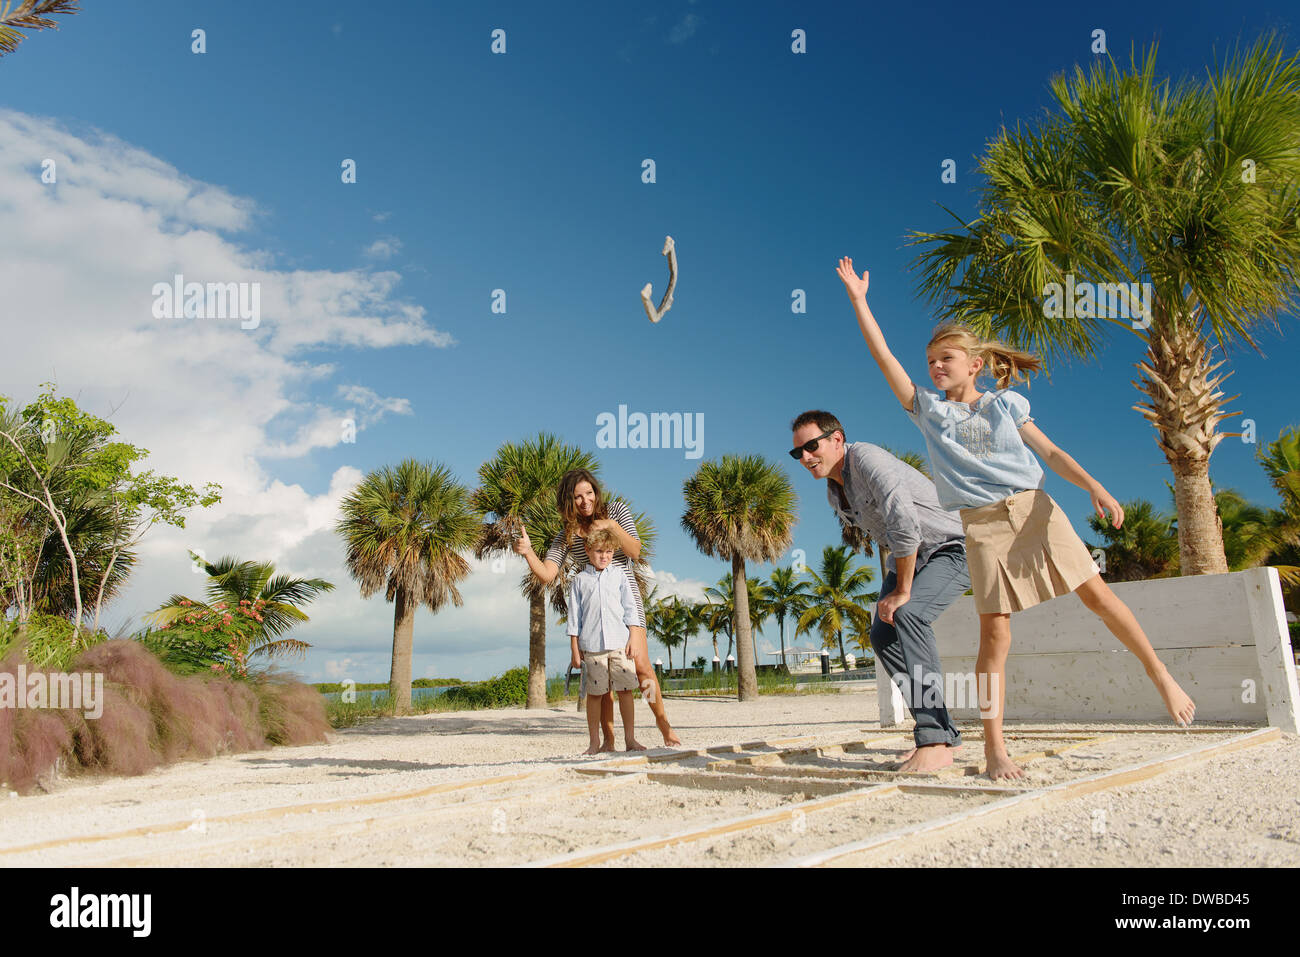 Family playing horseshoe game, Providenciales, Turks and Caicos Islands, Caribbean - Stock Image